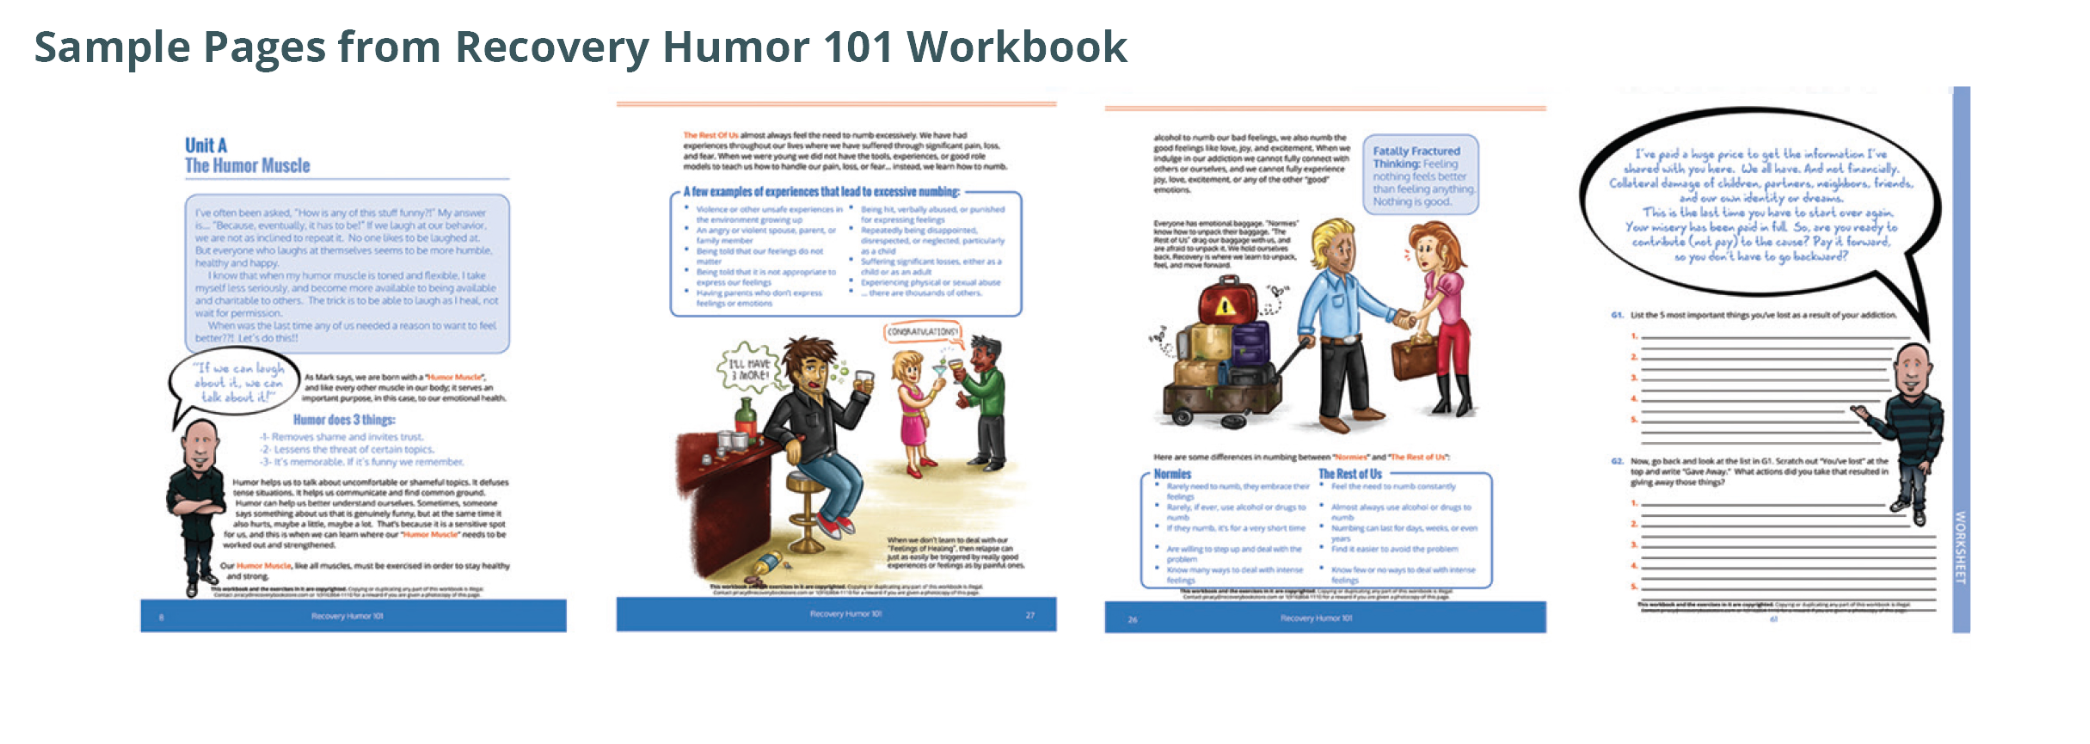 workbook-sample-pages-recovery-humor-101.png